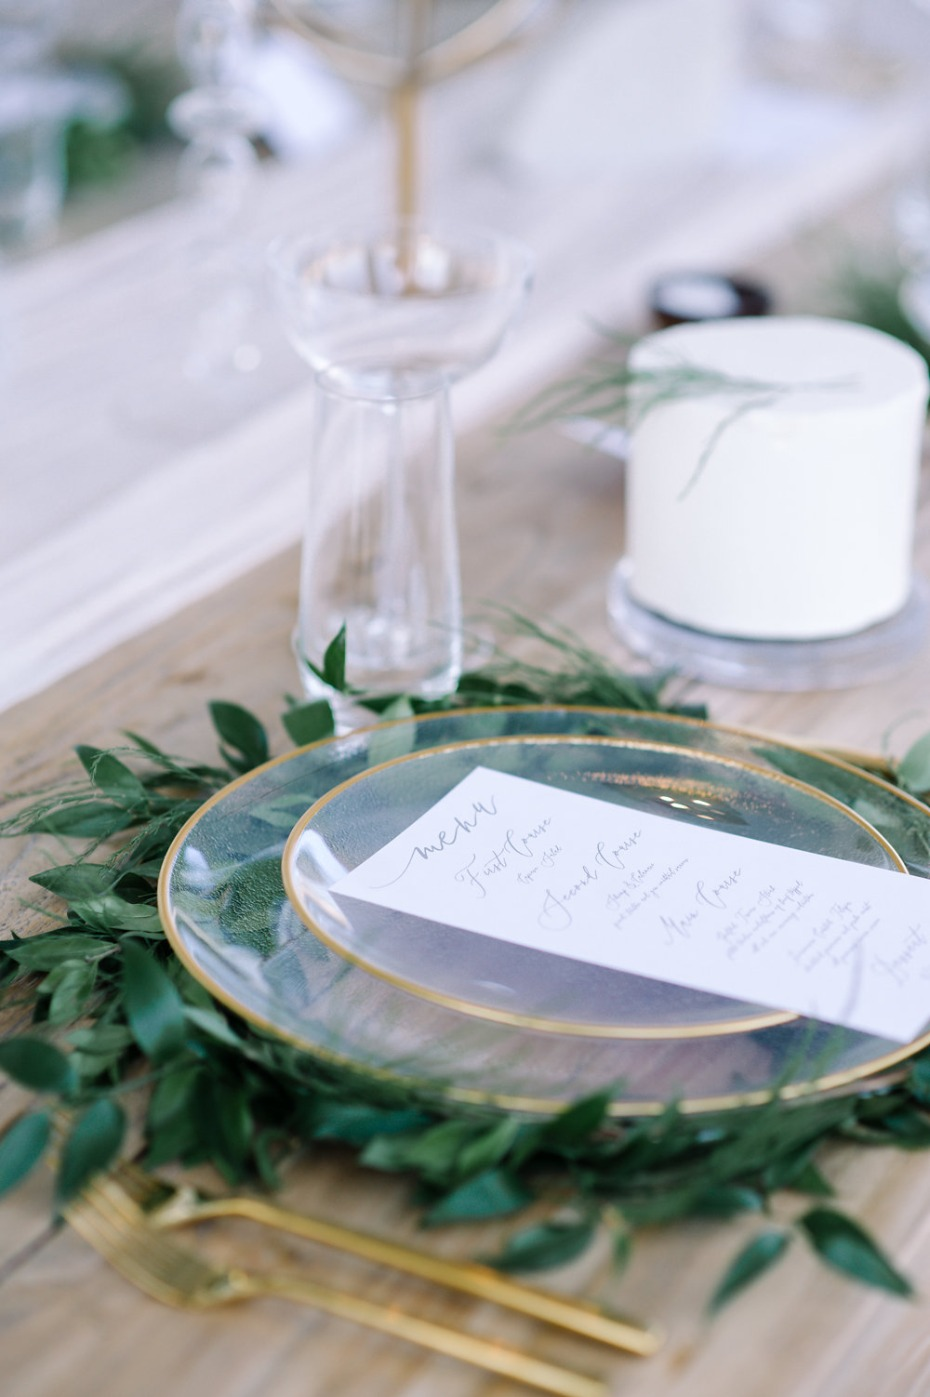 glass and gold place setting with greenery wreath charger